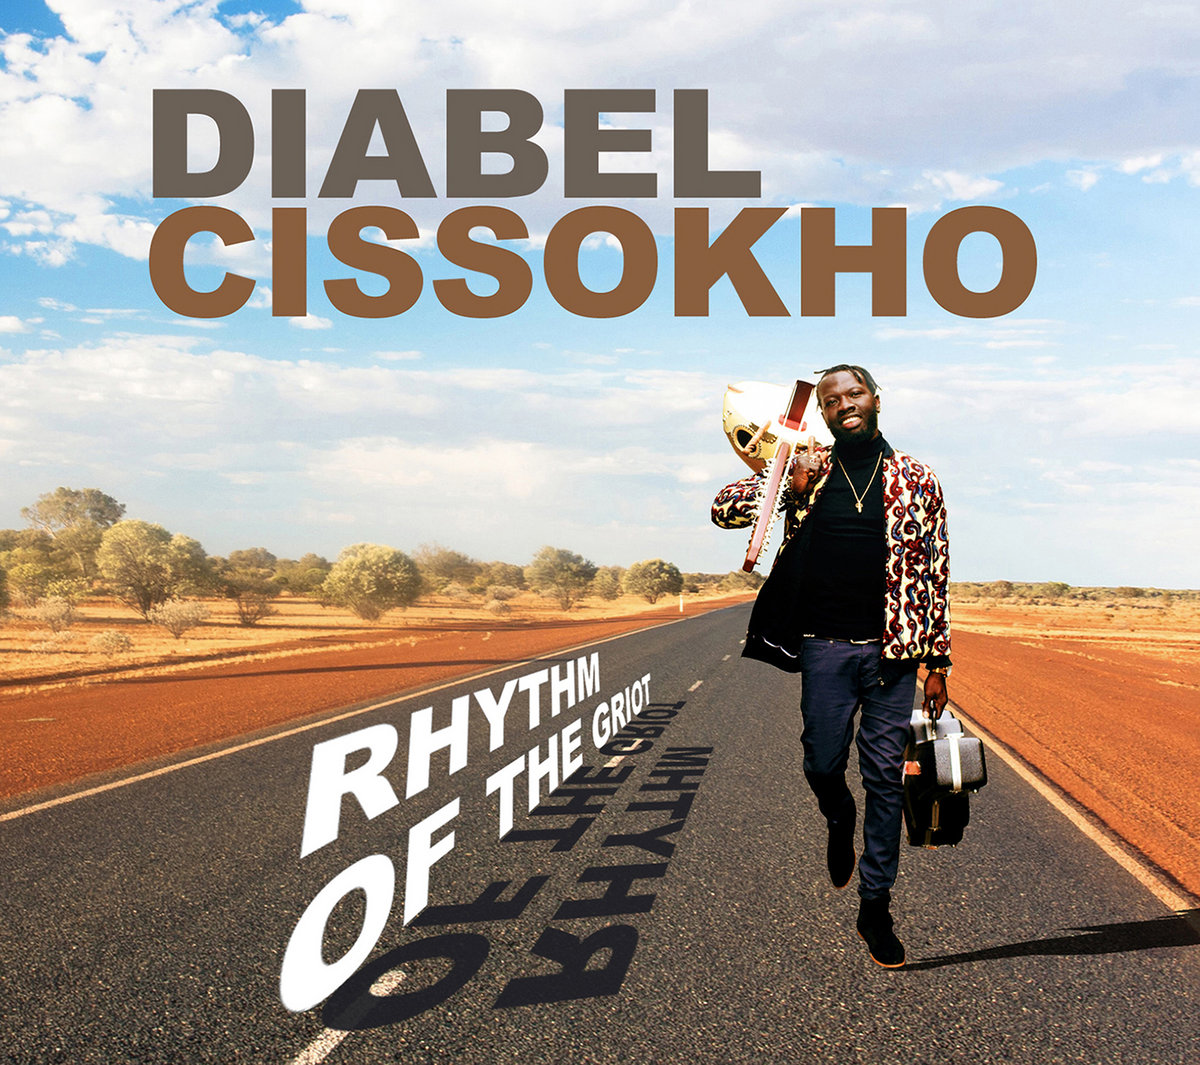 DIABEL CISSOKHO - Rhythm Of The Griot